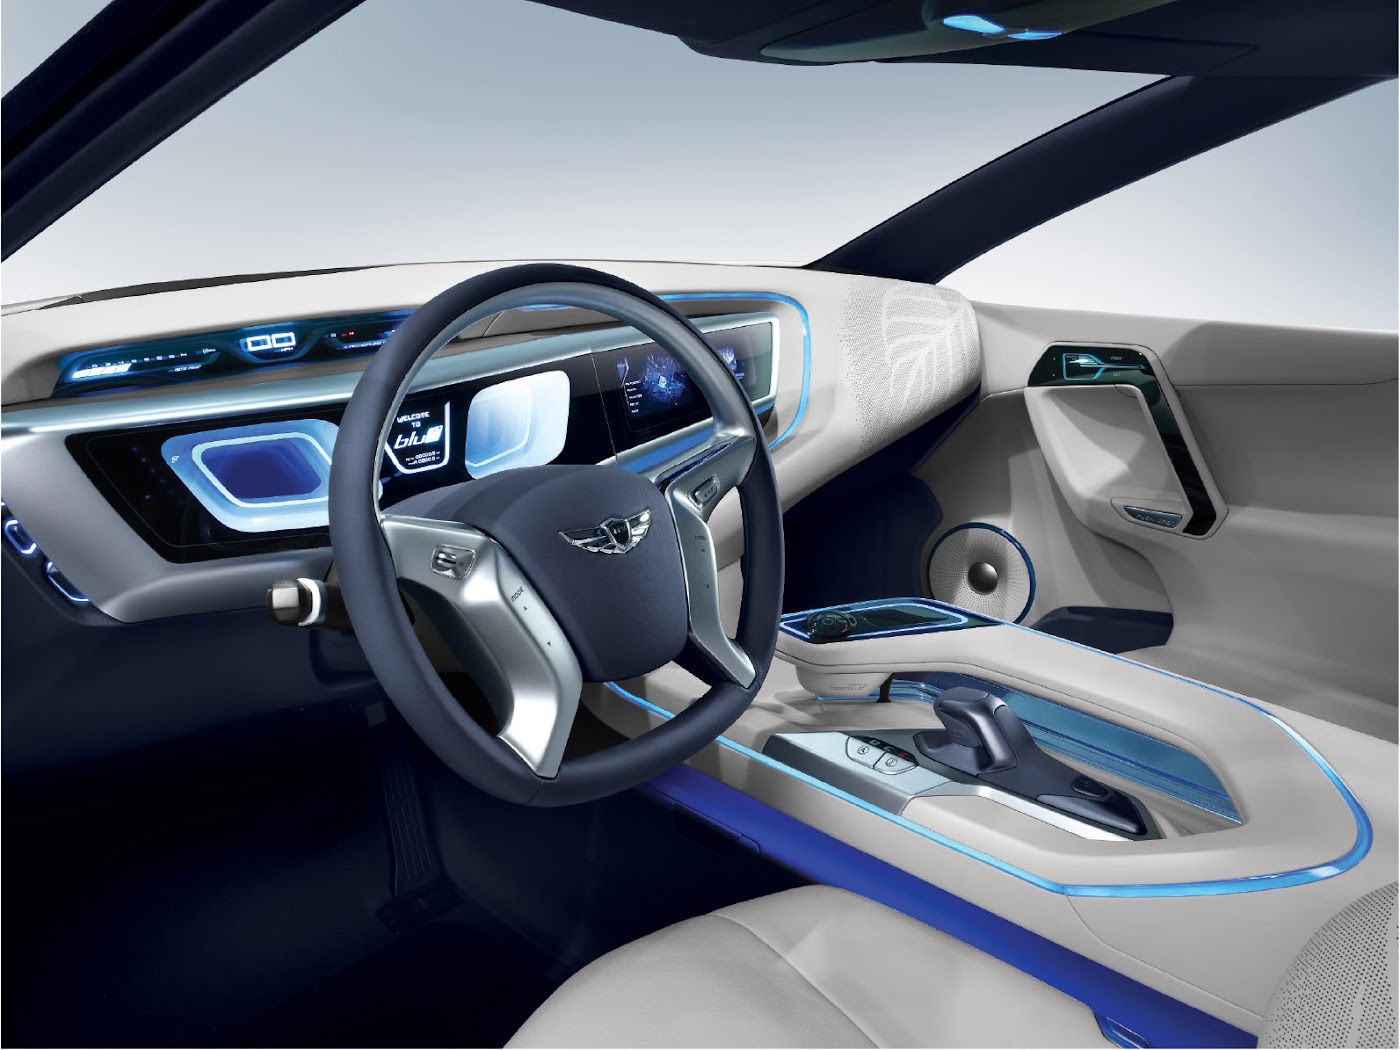 HYUNDAI BLUE2 LUXURY HYBRID CAR